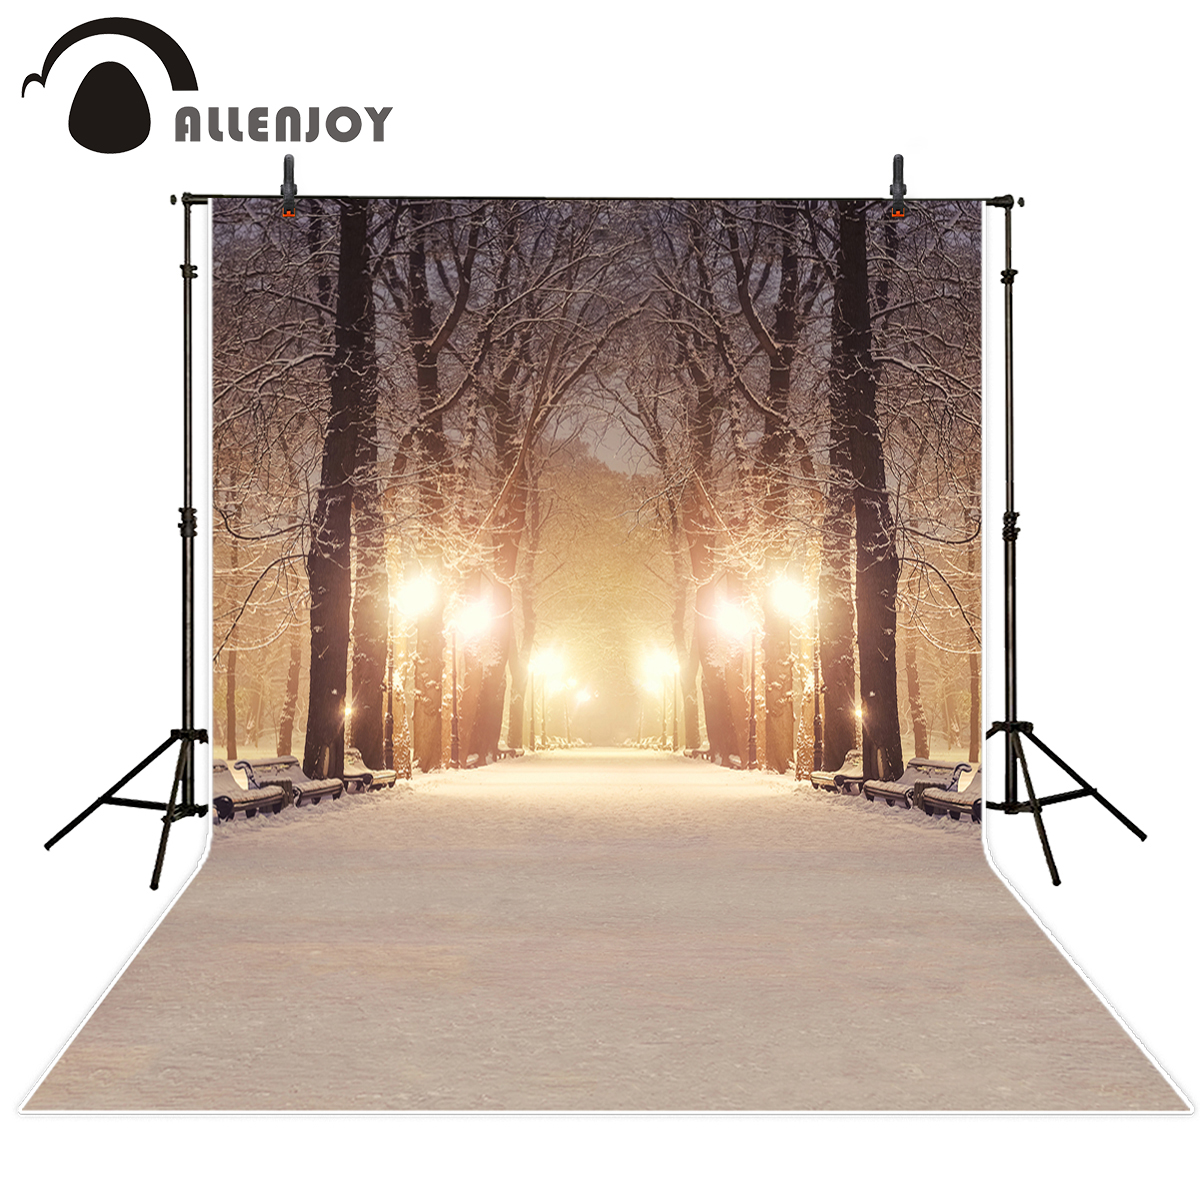 Allenjoy new arrivals photography backdrop Snowy winter in the town hazy road trees background photo studio camera fotografica the woman in the photo